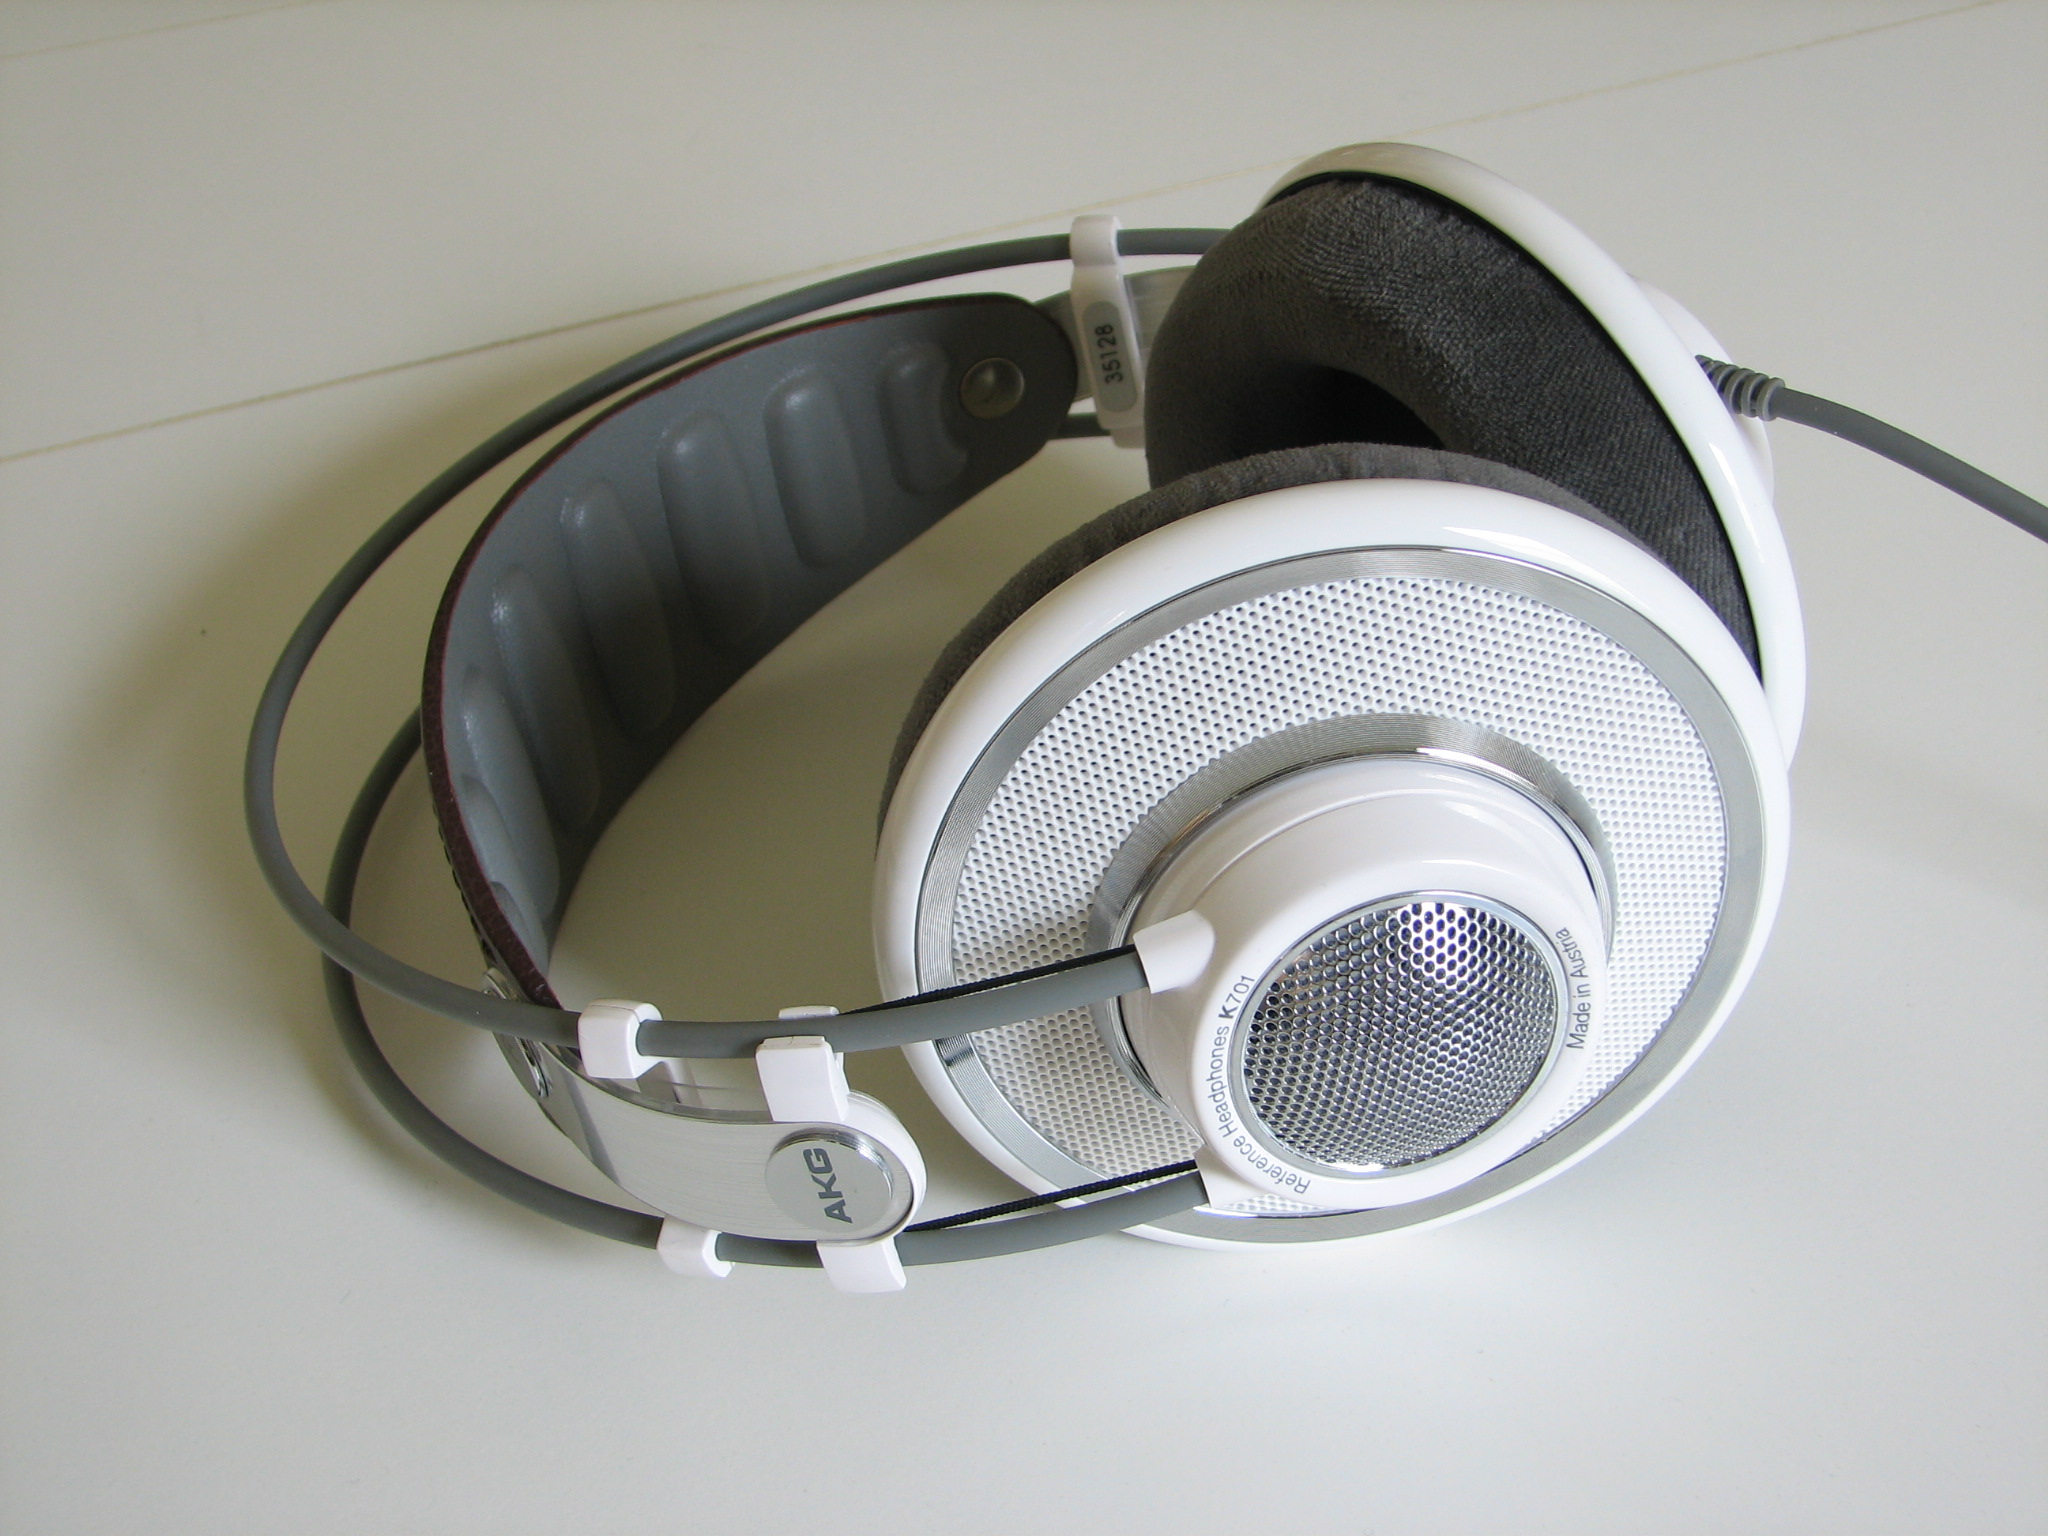 AKG K701 Studio Headphones | Reviews | Page 5 | Headphone Reviews and Discussion - Head-Fi.org